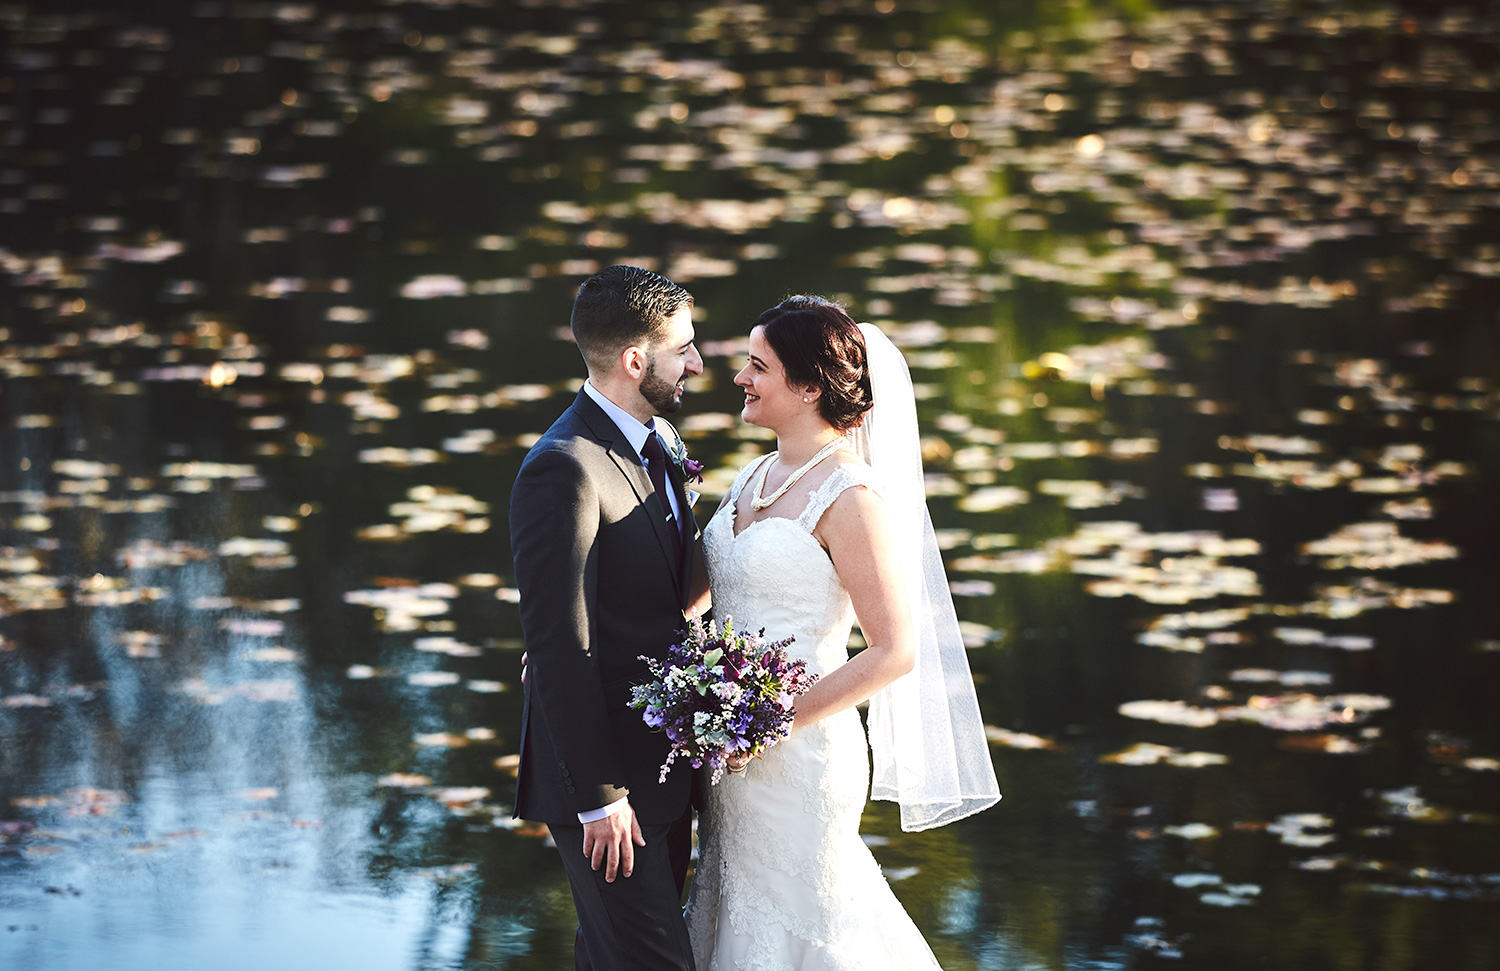 161119_ArrowParkLake&LodgeWedding_By_BriJohnsonWeddings_0090.jpg